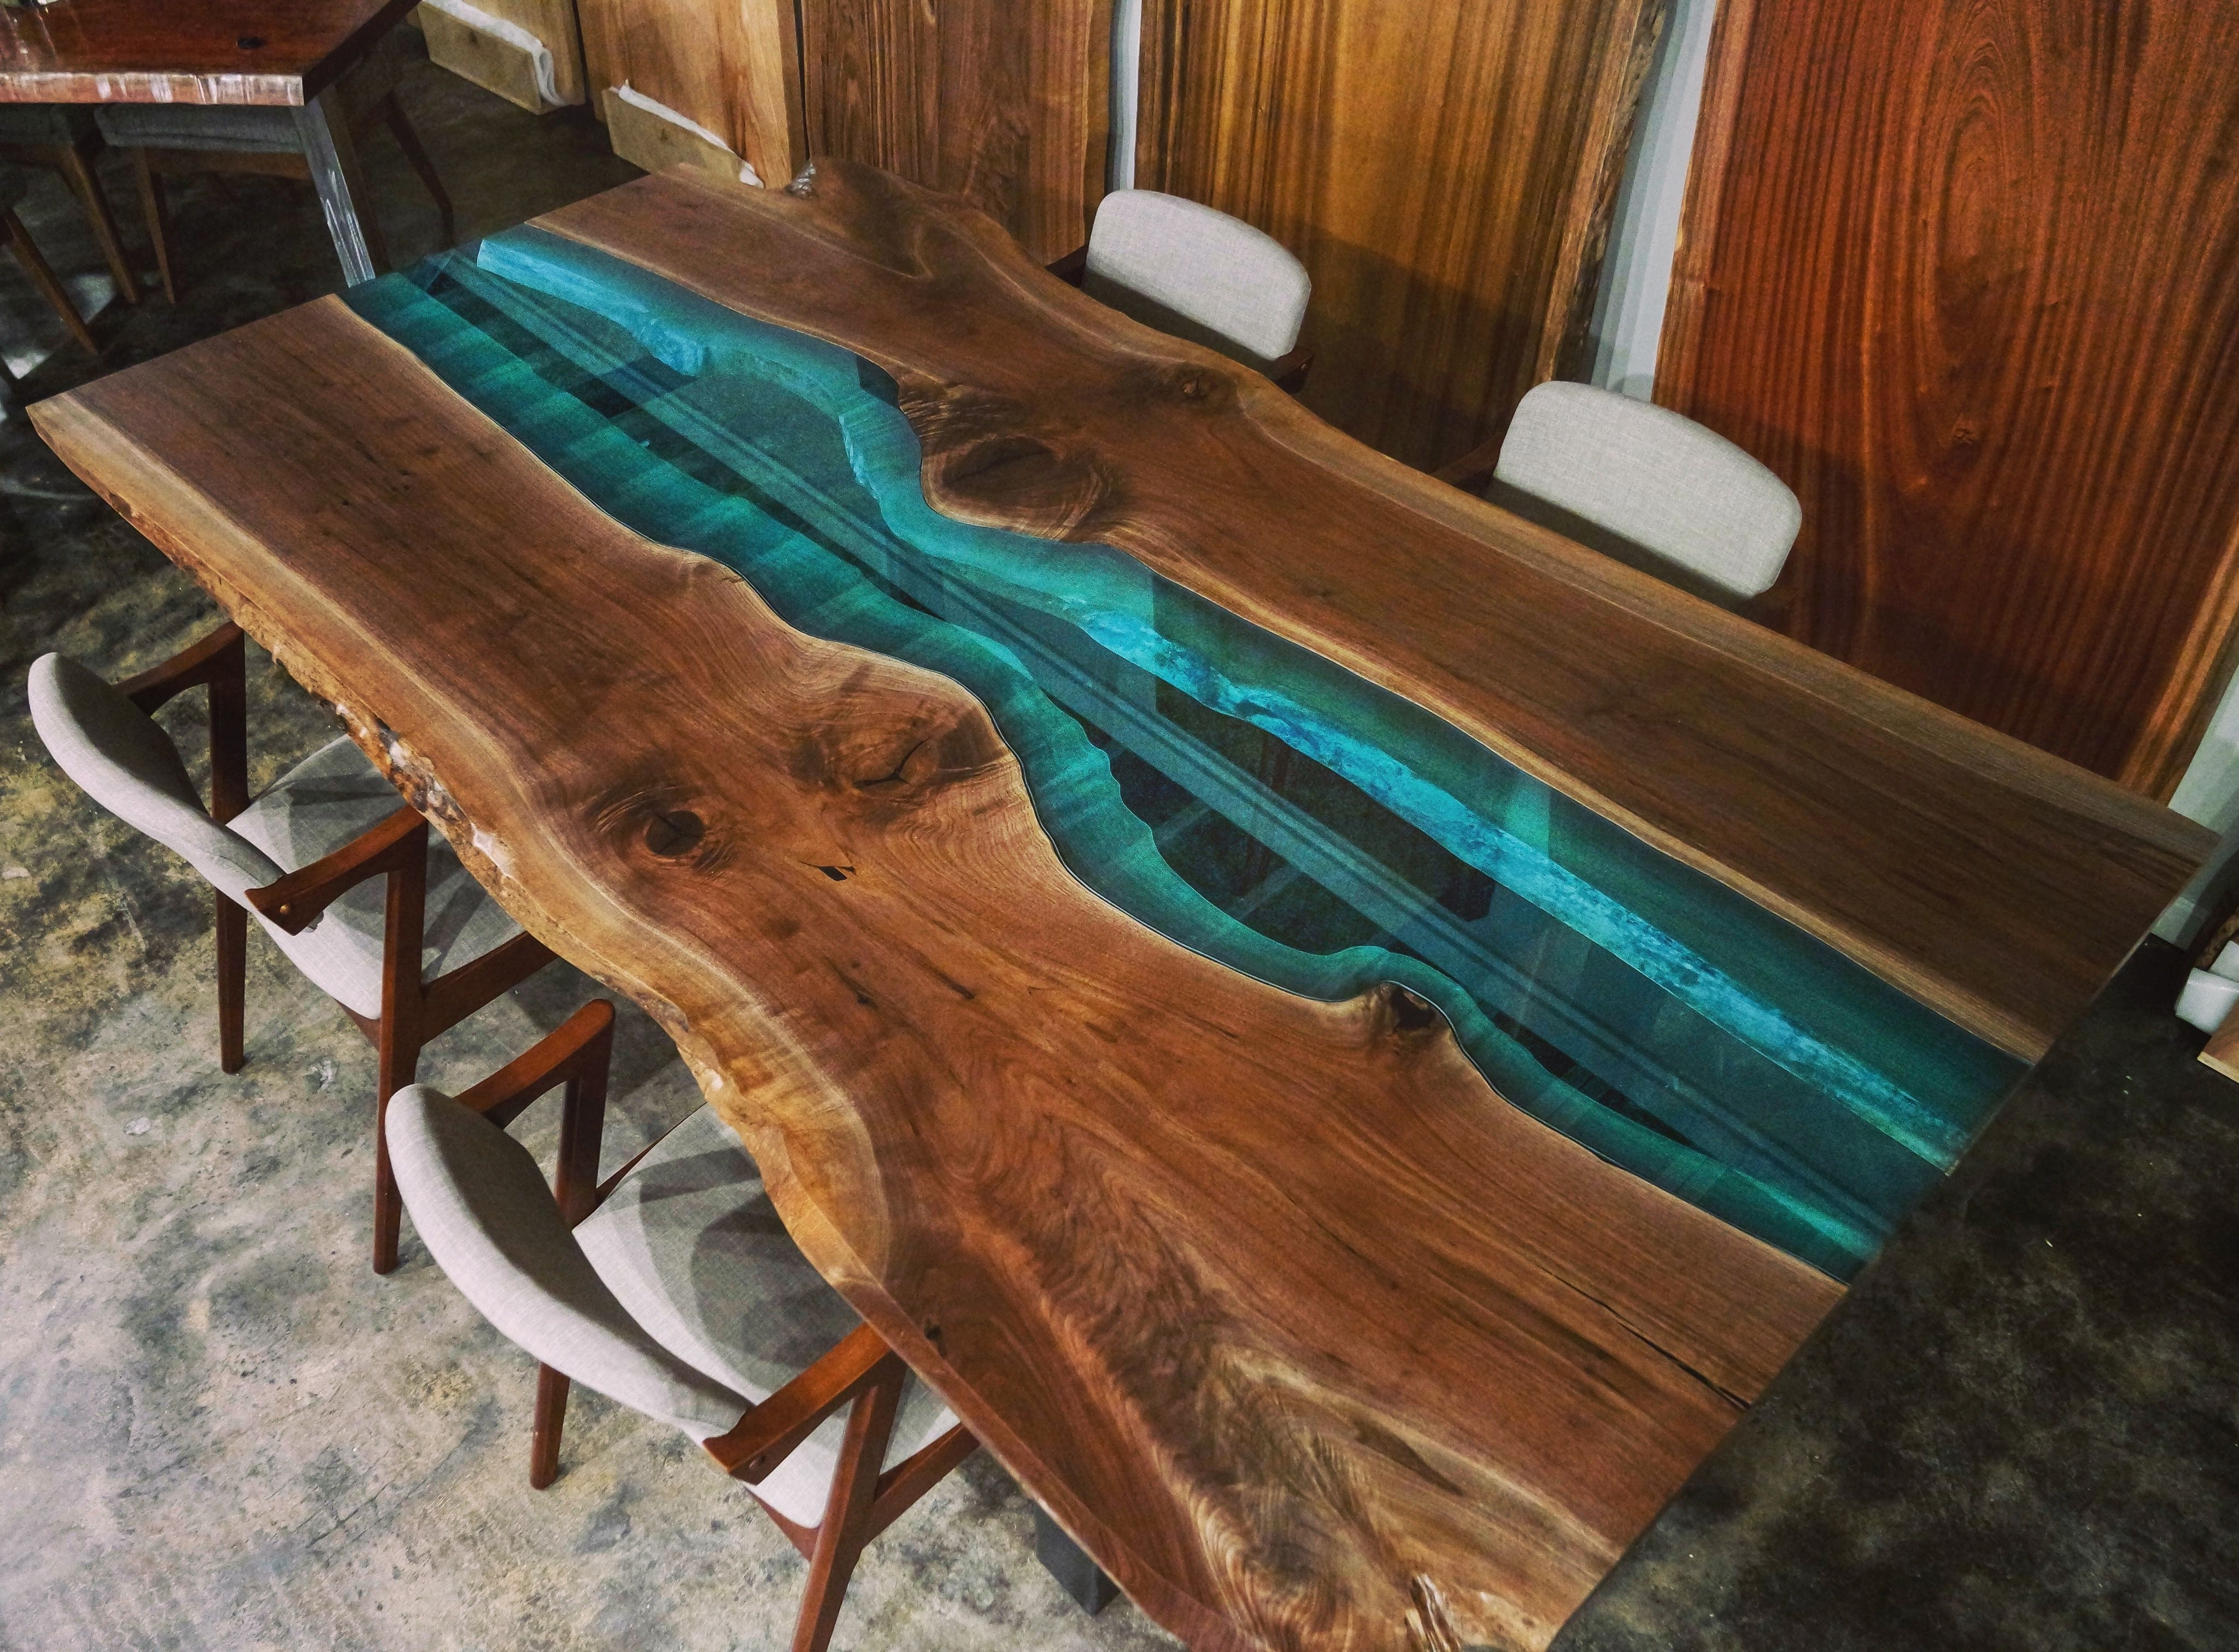 Available Now! Live Edge Bookmatched Walnut With Blue Glass River Regarding 2018 Blue Glass Dining Tables (Gallery 6 of 25)